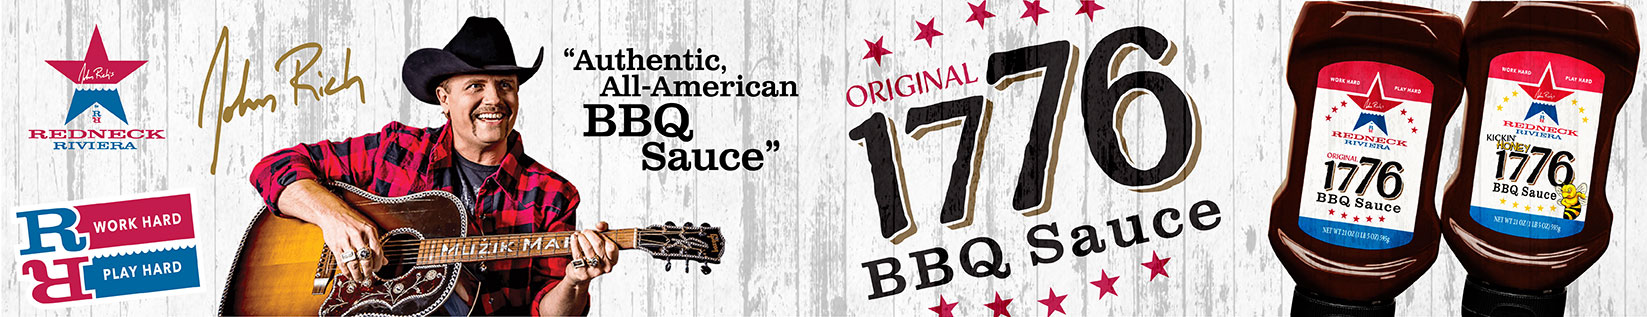 Image of John Rich playing the guitar along with two bottlles of 1776 BBQ Sauce promoting this new barbecue sauce